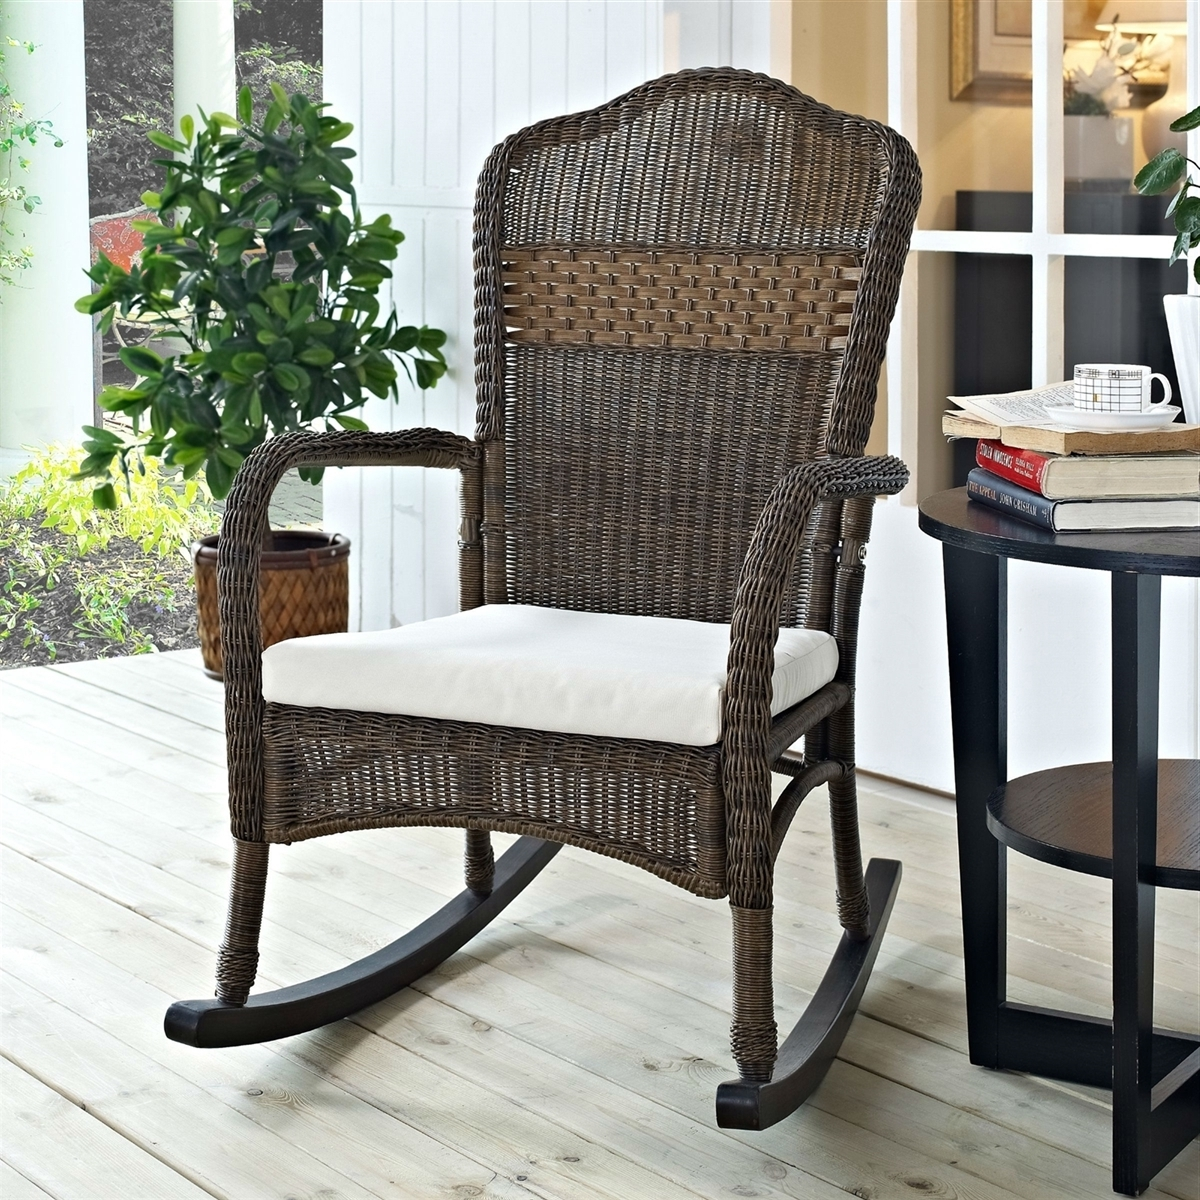 Widely Used Outdoor Patio Rocking Chairs Inside Wicker Patio Furniture Rocking Chair Mocha With Beige Cushion (View 20 of 20)